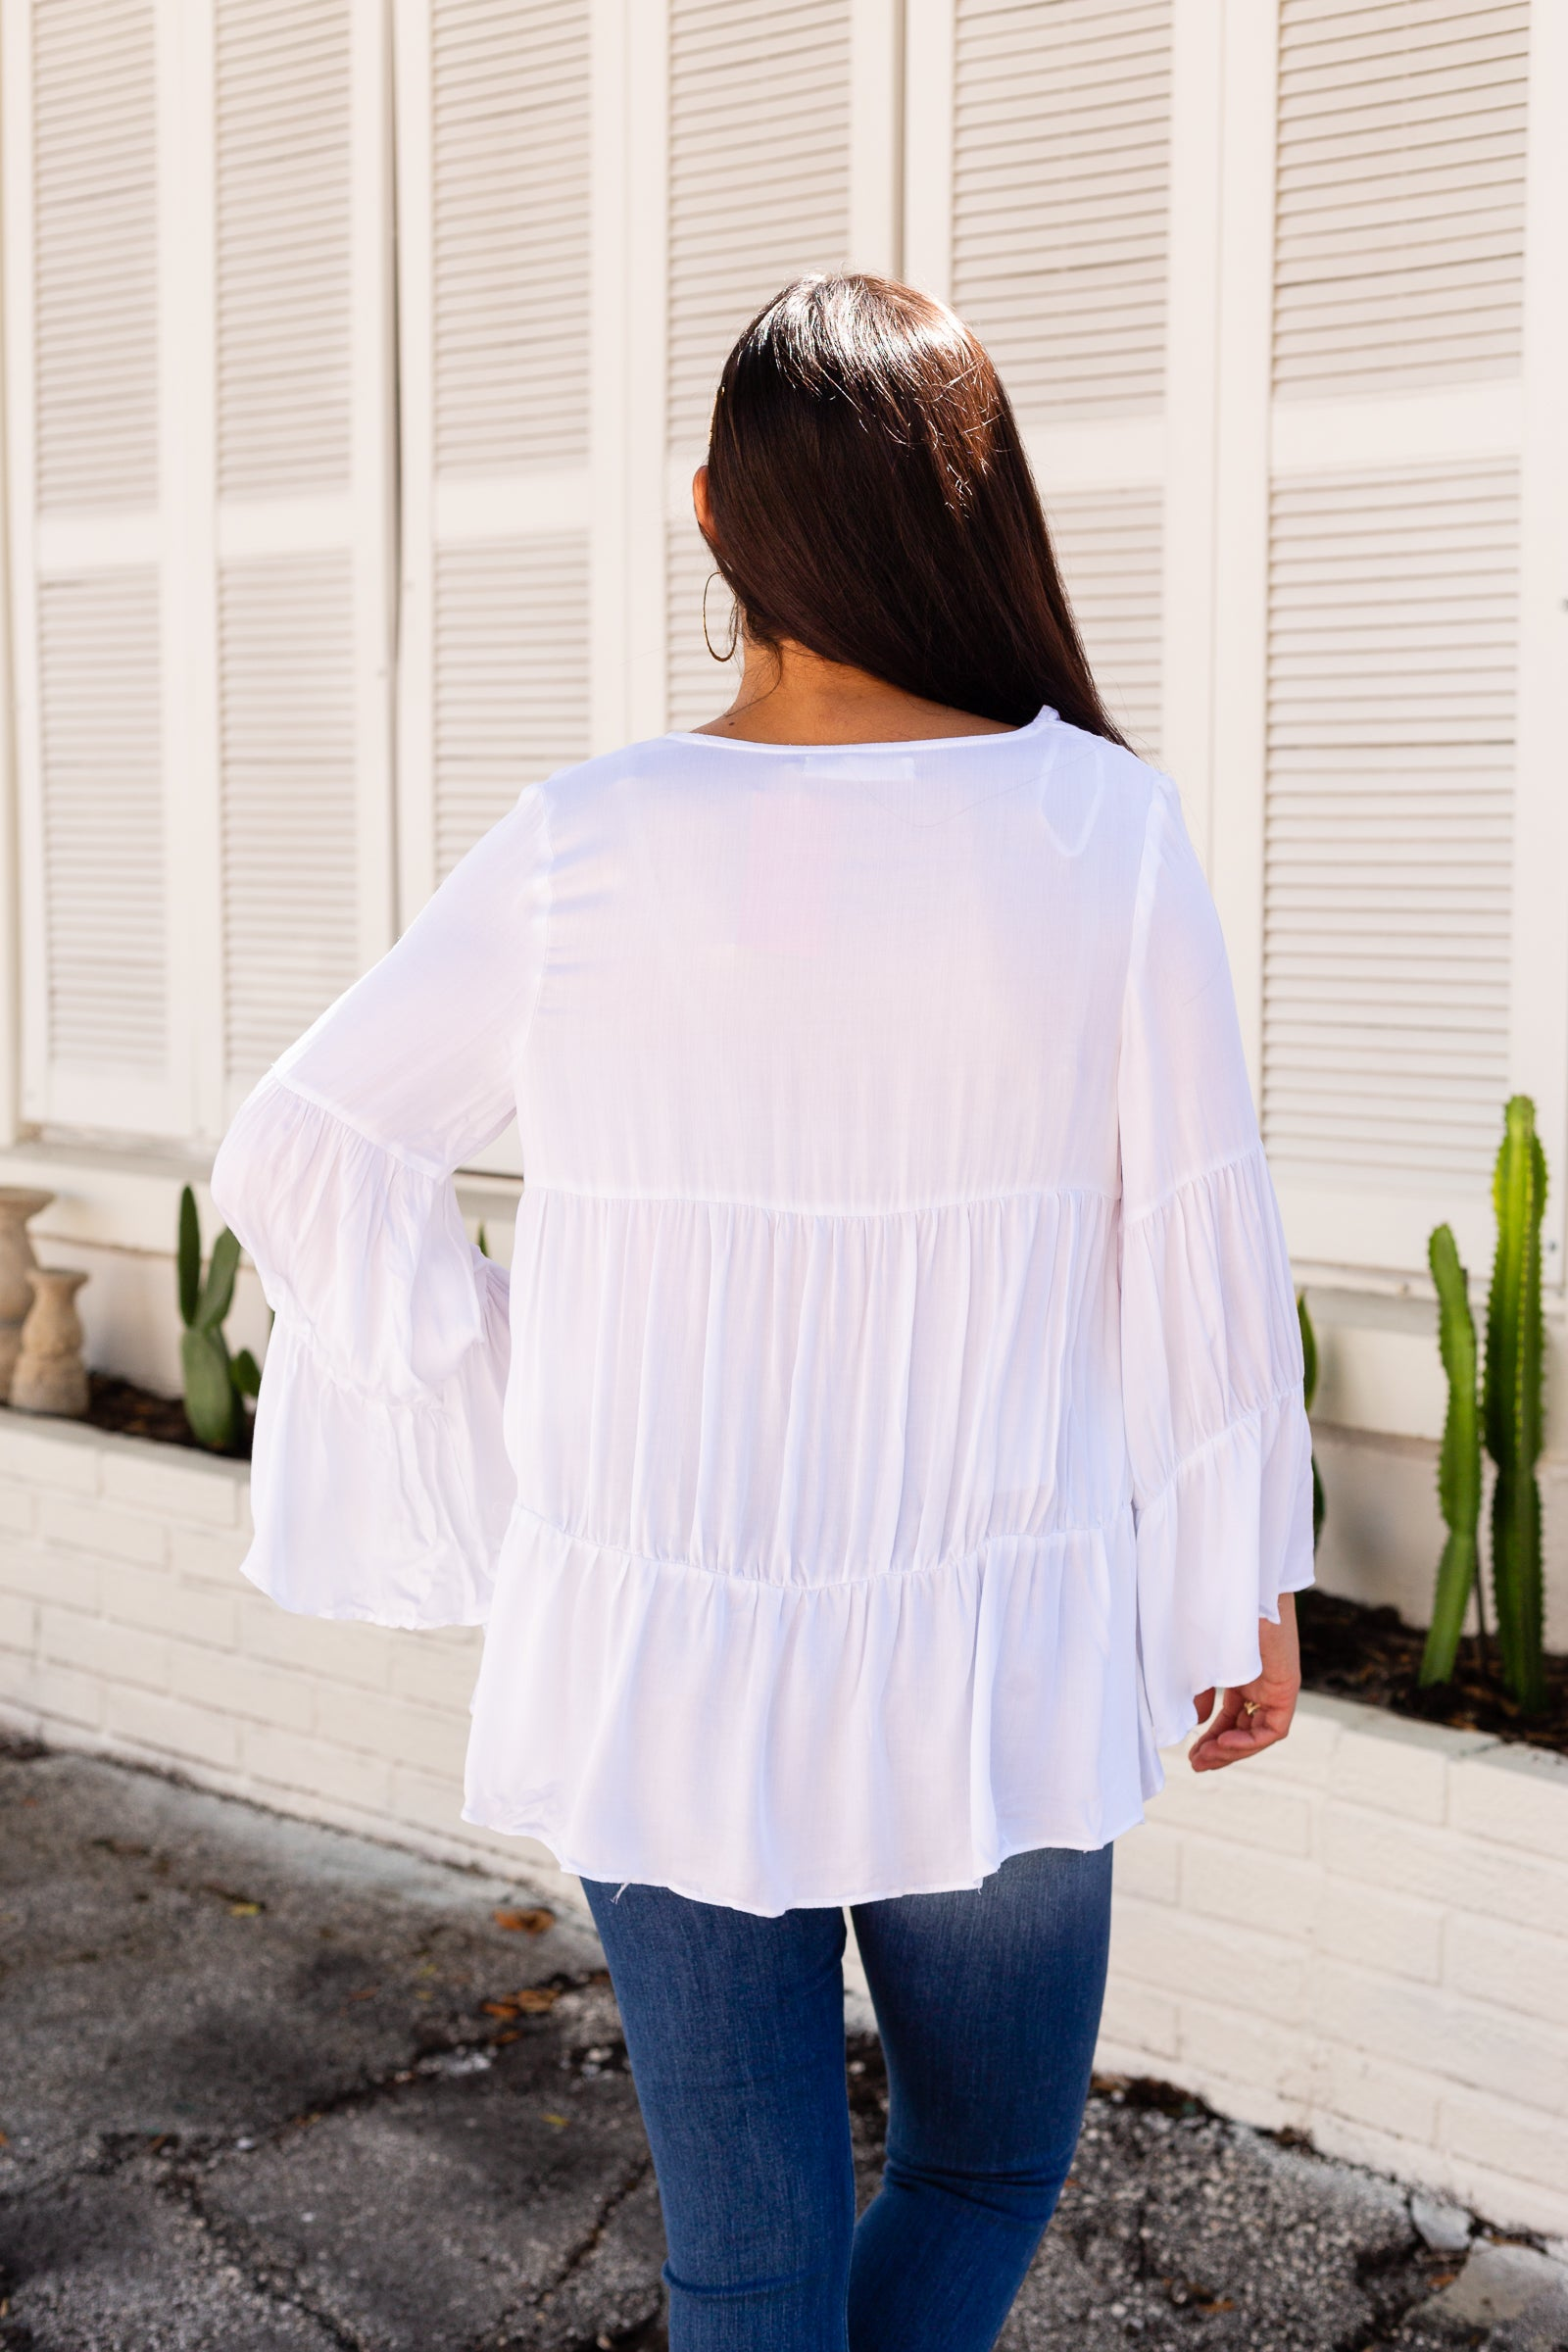 Long bell-sleeves attach to a v-neckline on an oversized and loose tiered bodice. Style this lightweight top with your favorite medium-wash jeans.